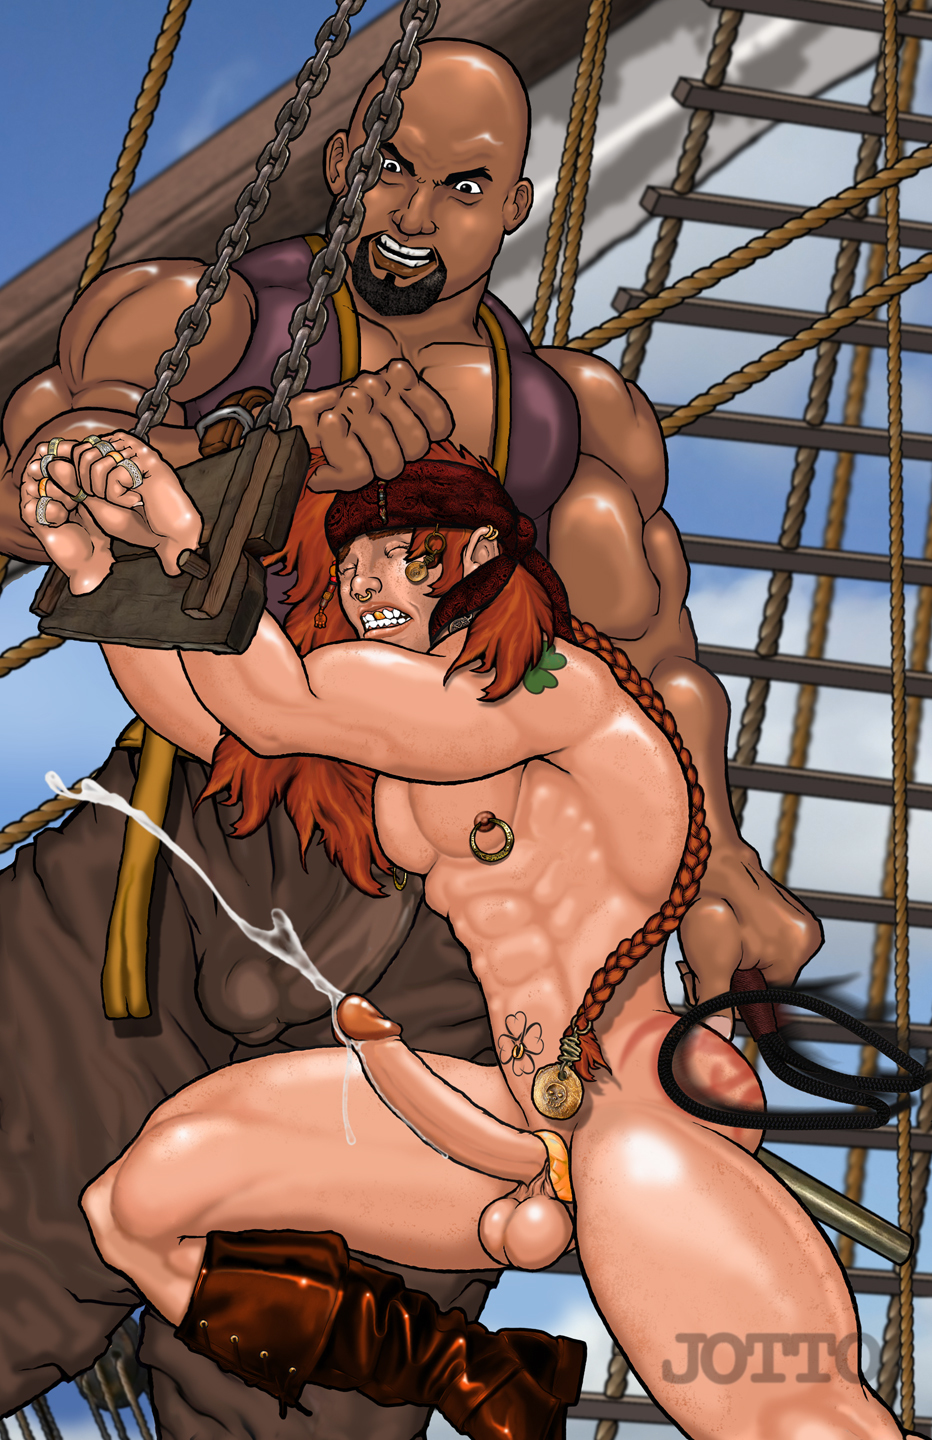 Pics of naked pirate women nsfw films